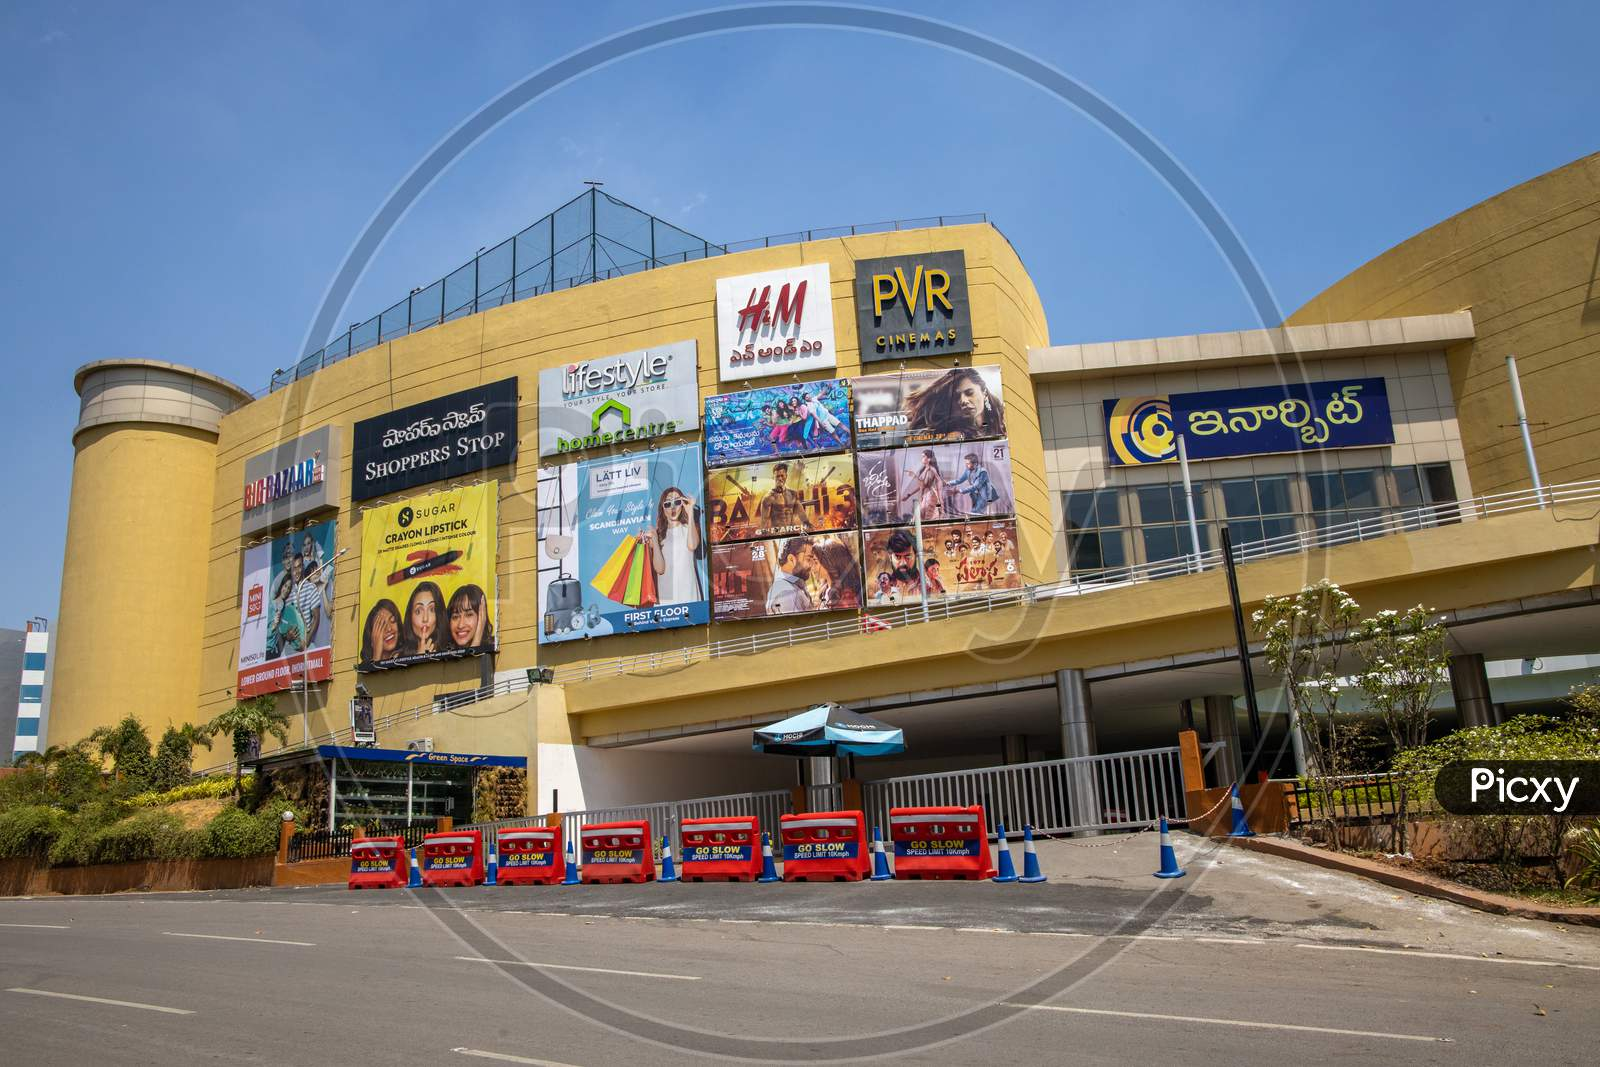 Inorbit Mall Has Been Closed As A Part Of  Janata Curfew , As Indian Prime Minister Narendra Modi Called For A 14 Hour Janta  Curfew Or Self-Imposed  Quarantine To Break The  Highly Contagious  Covid 19 Or Corona Virus Spread